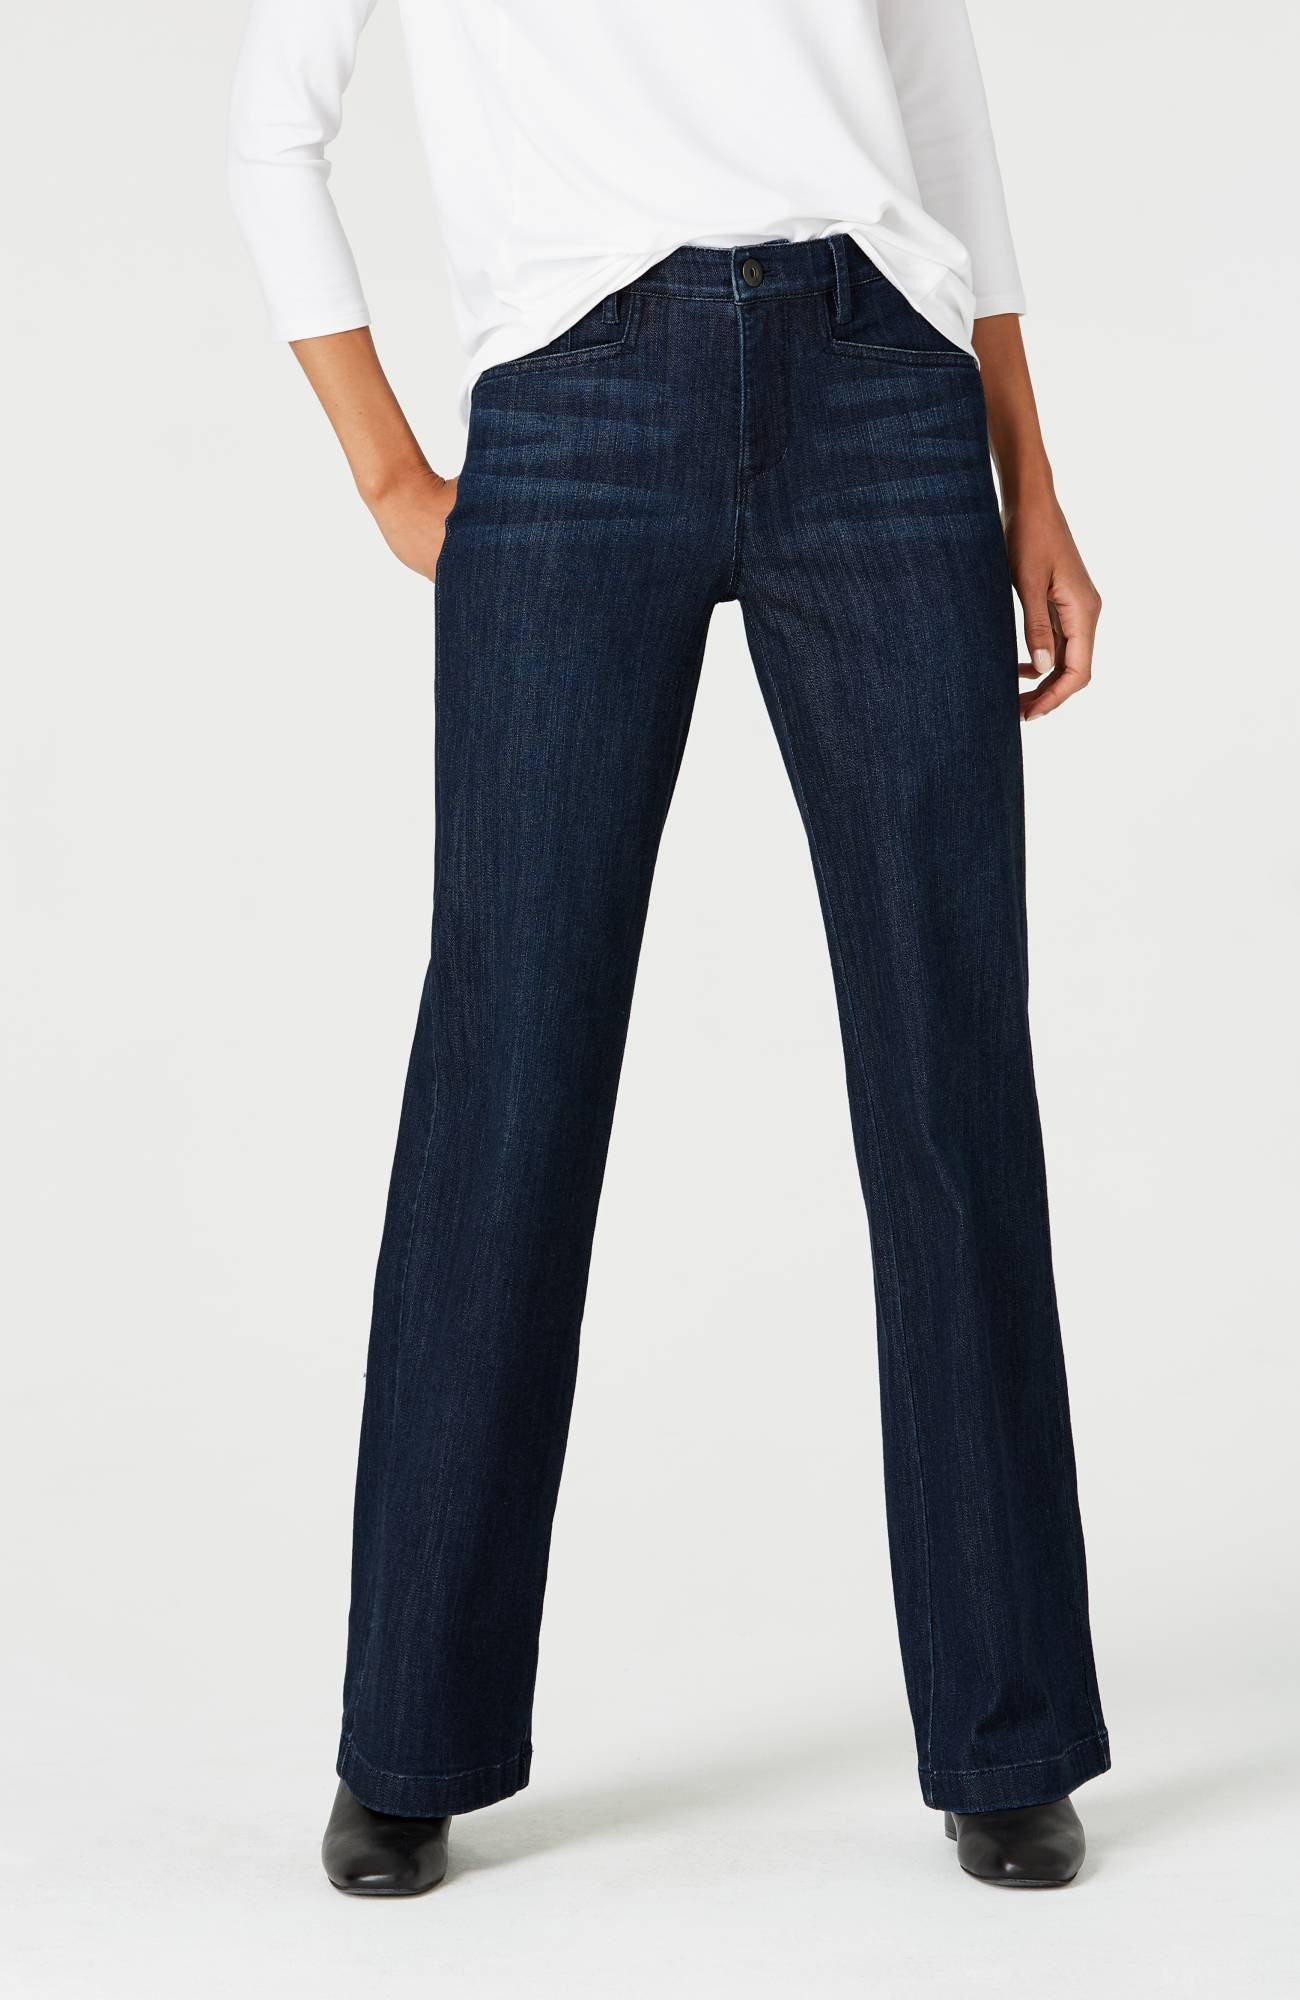 Smooth-Fit full-leg stretch jeans